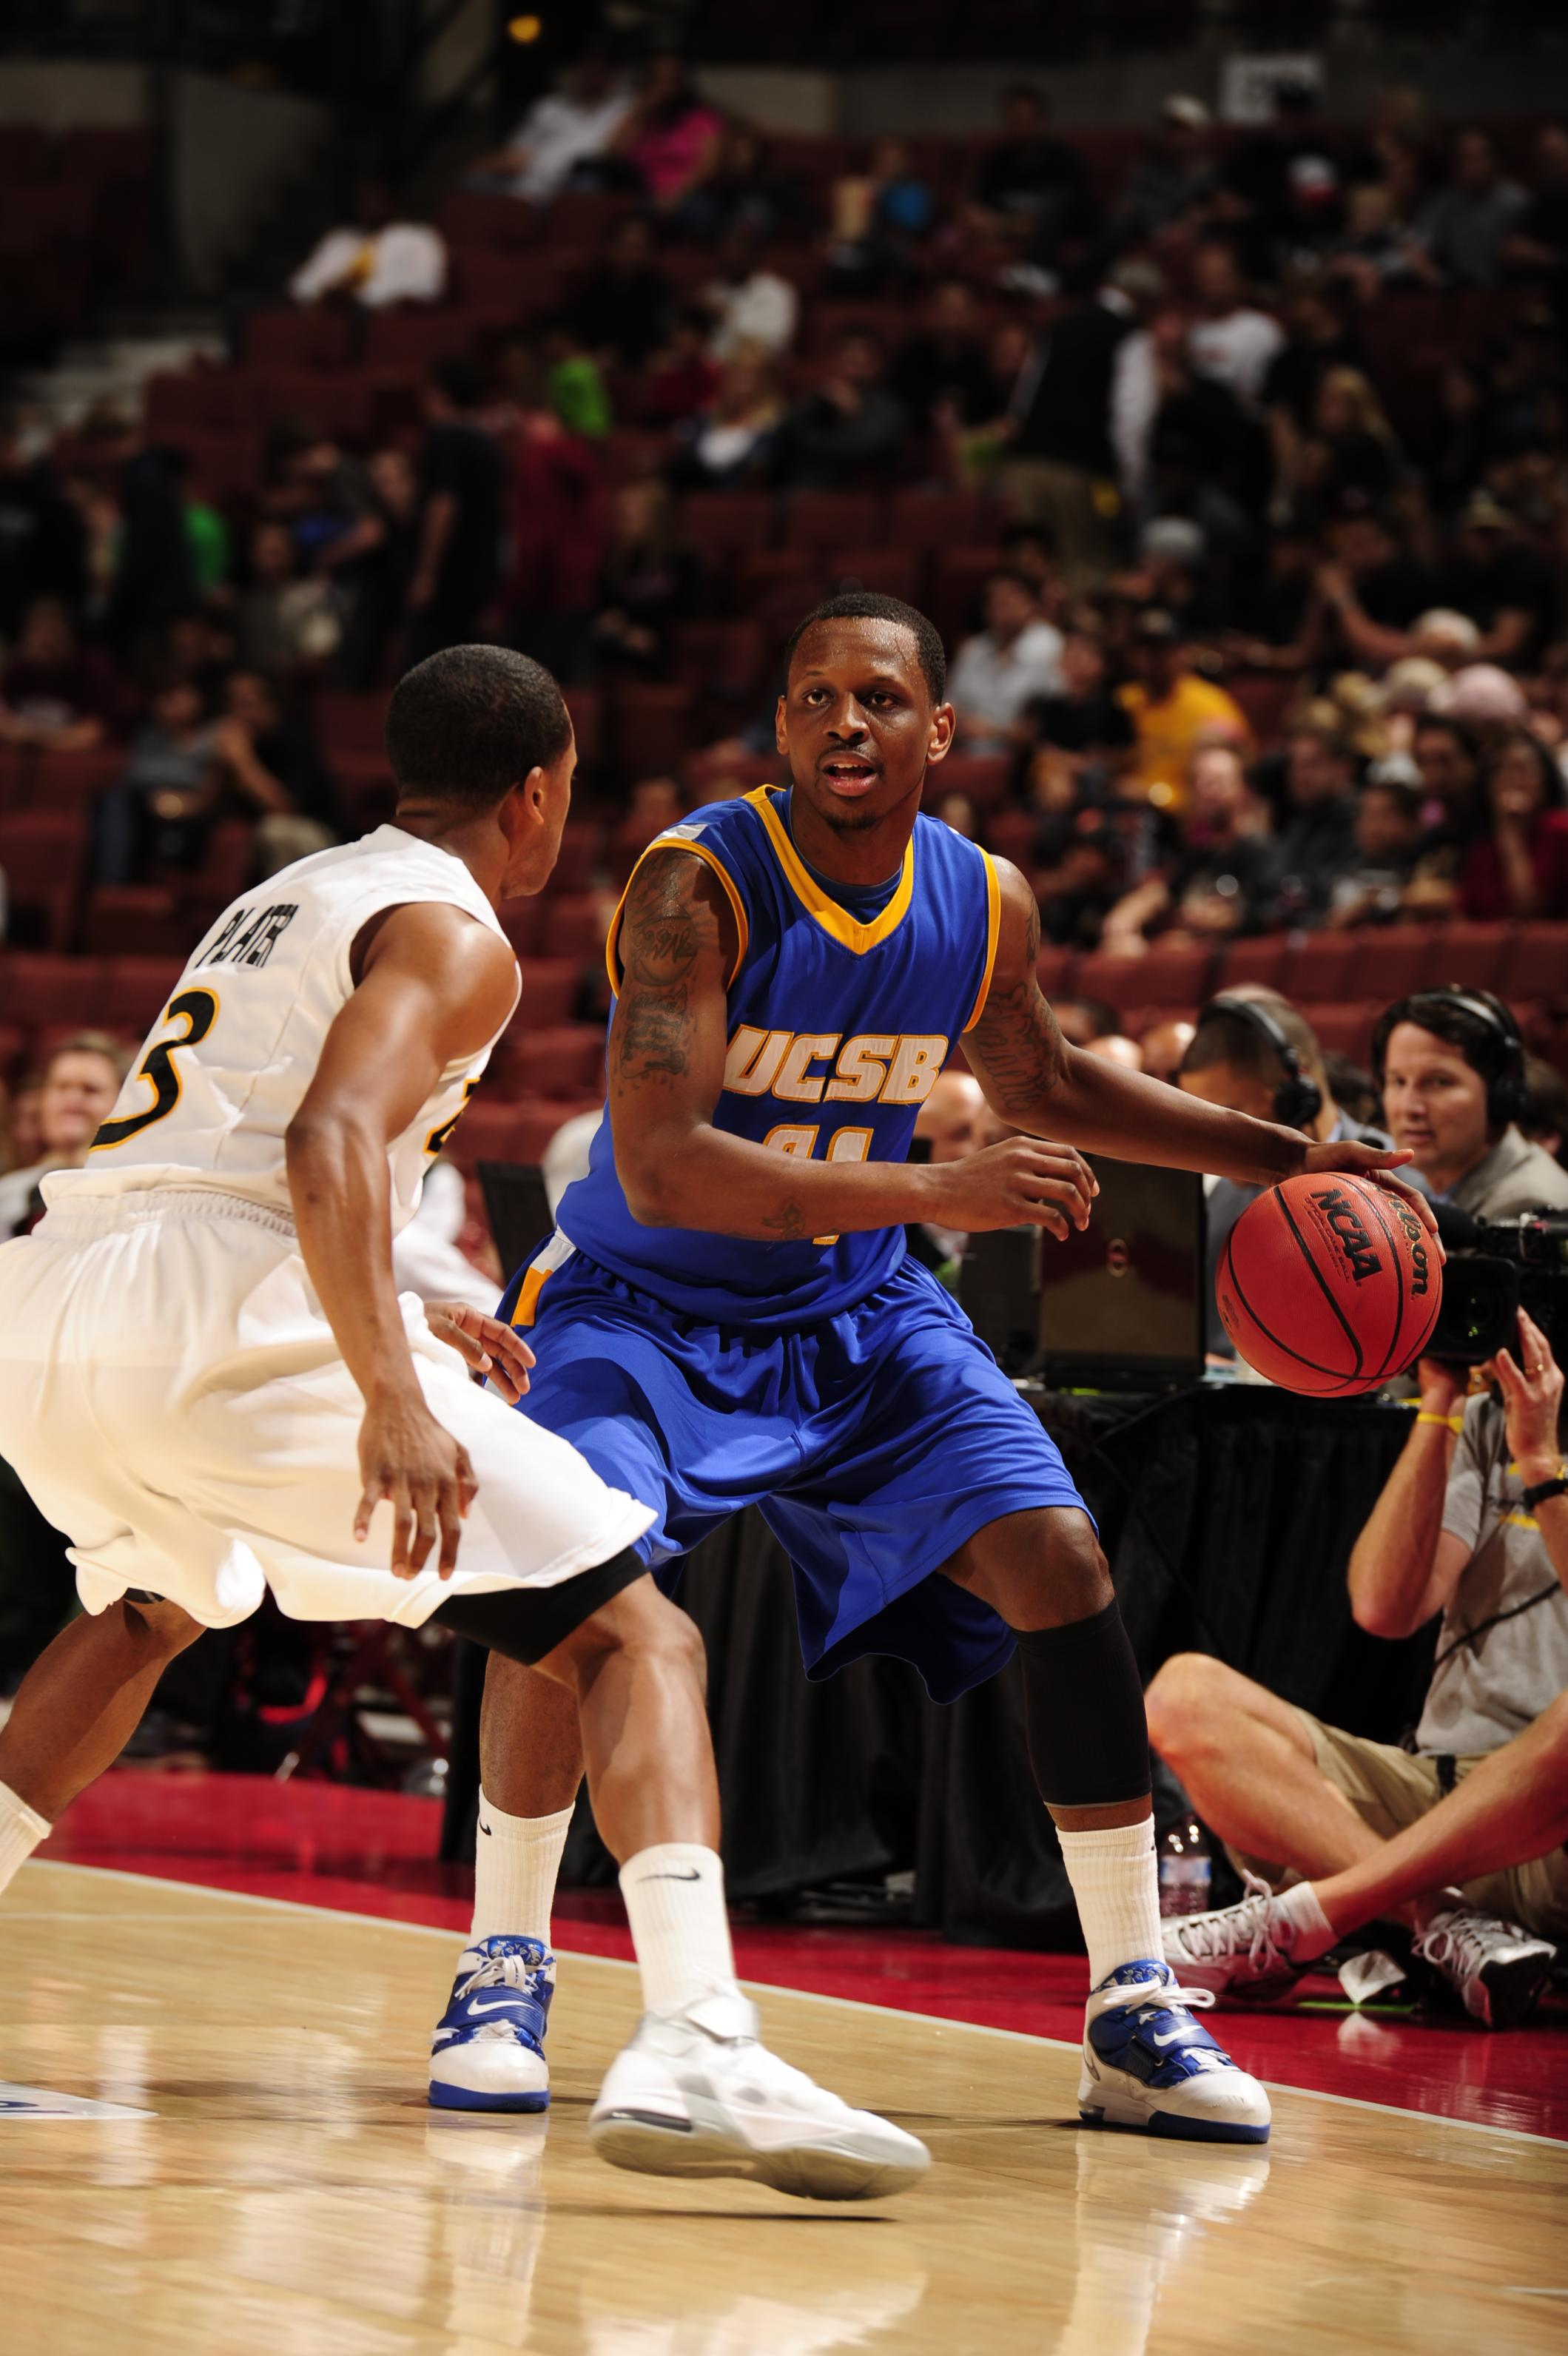 Gauchos Featured Minimum of Four Times During Big West TV Package